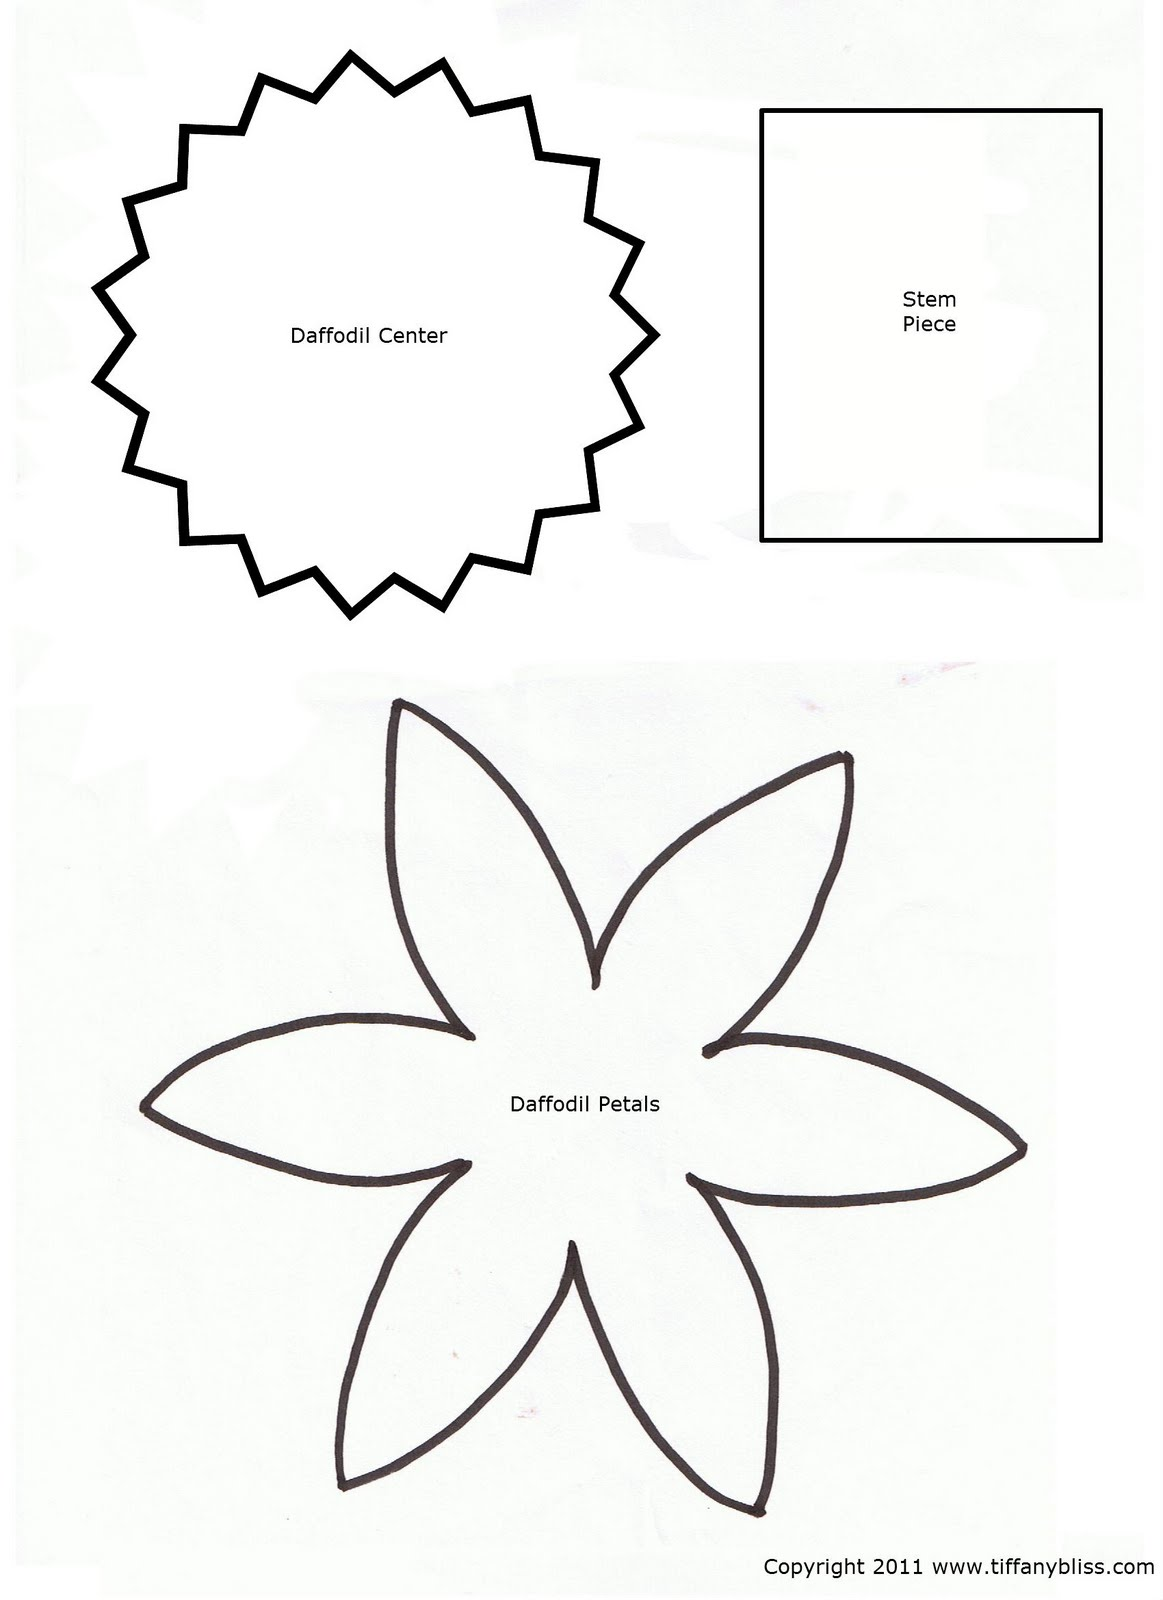 Flower patterns to cut out paper - photo#15